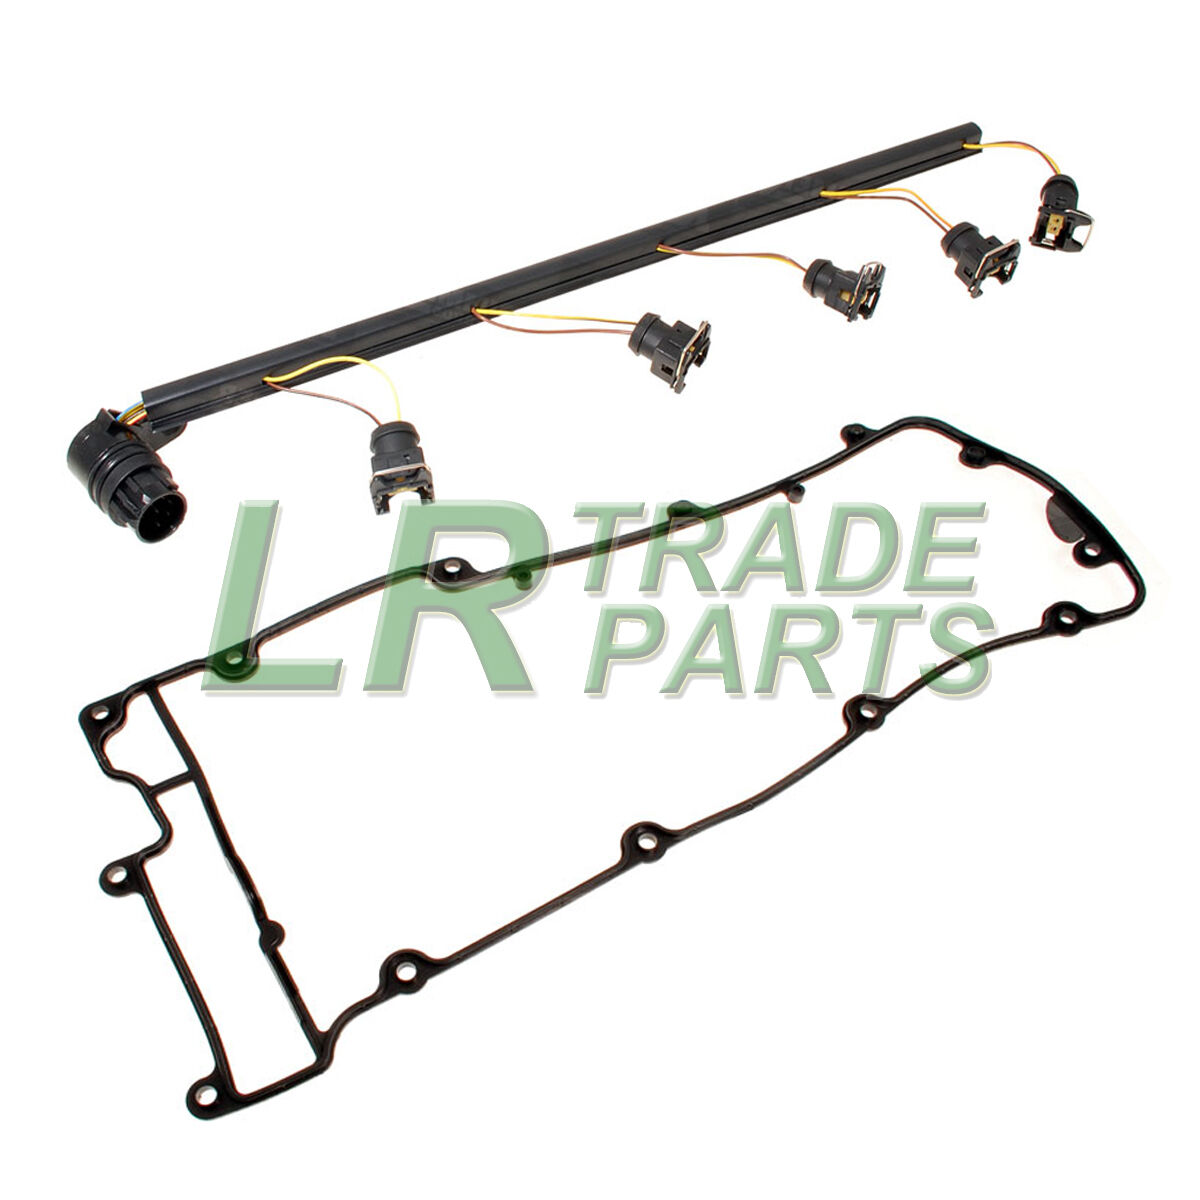 Land Rover Discovery 2 Td5 Injector Wiring Harness Rocker Cover 1 Gasket 2001 Of 1free Shipping